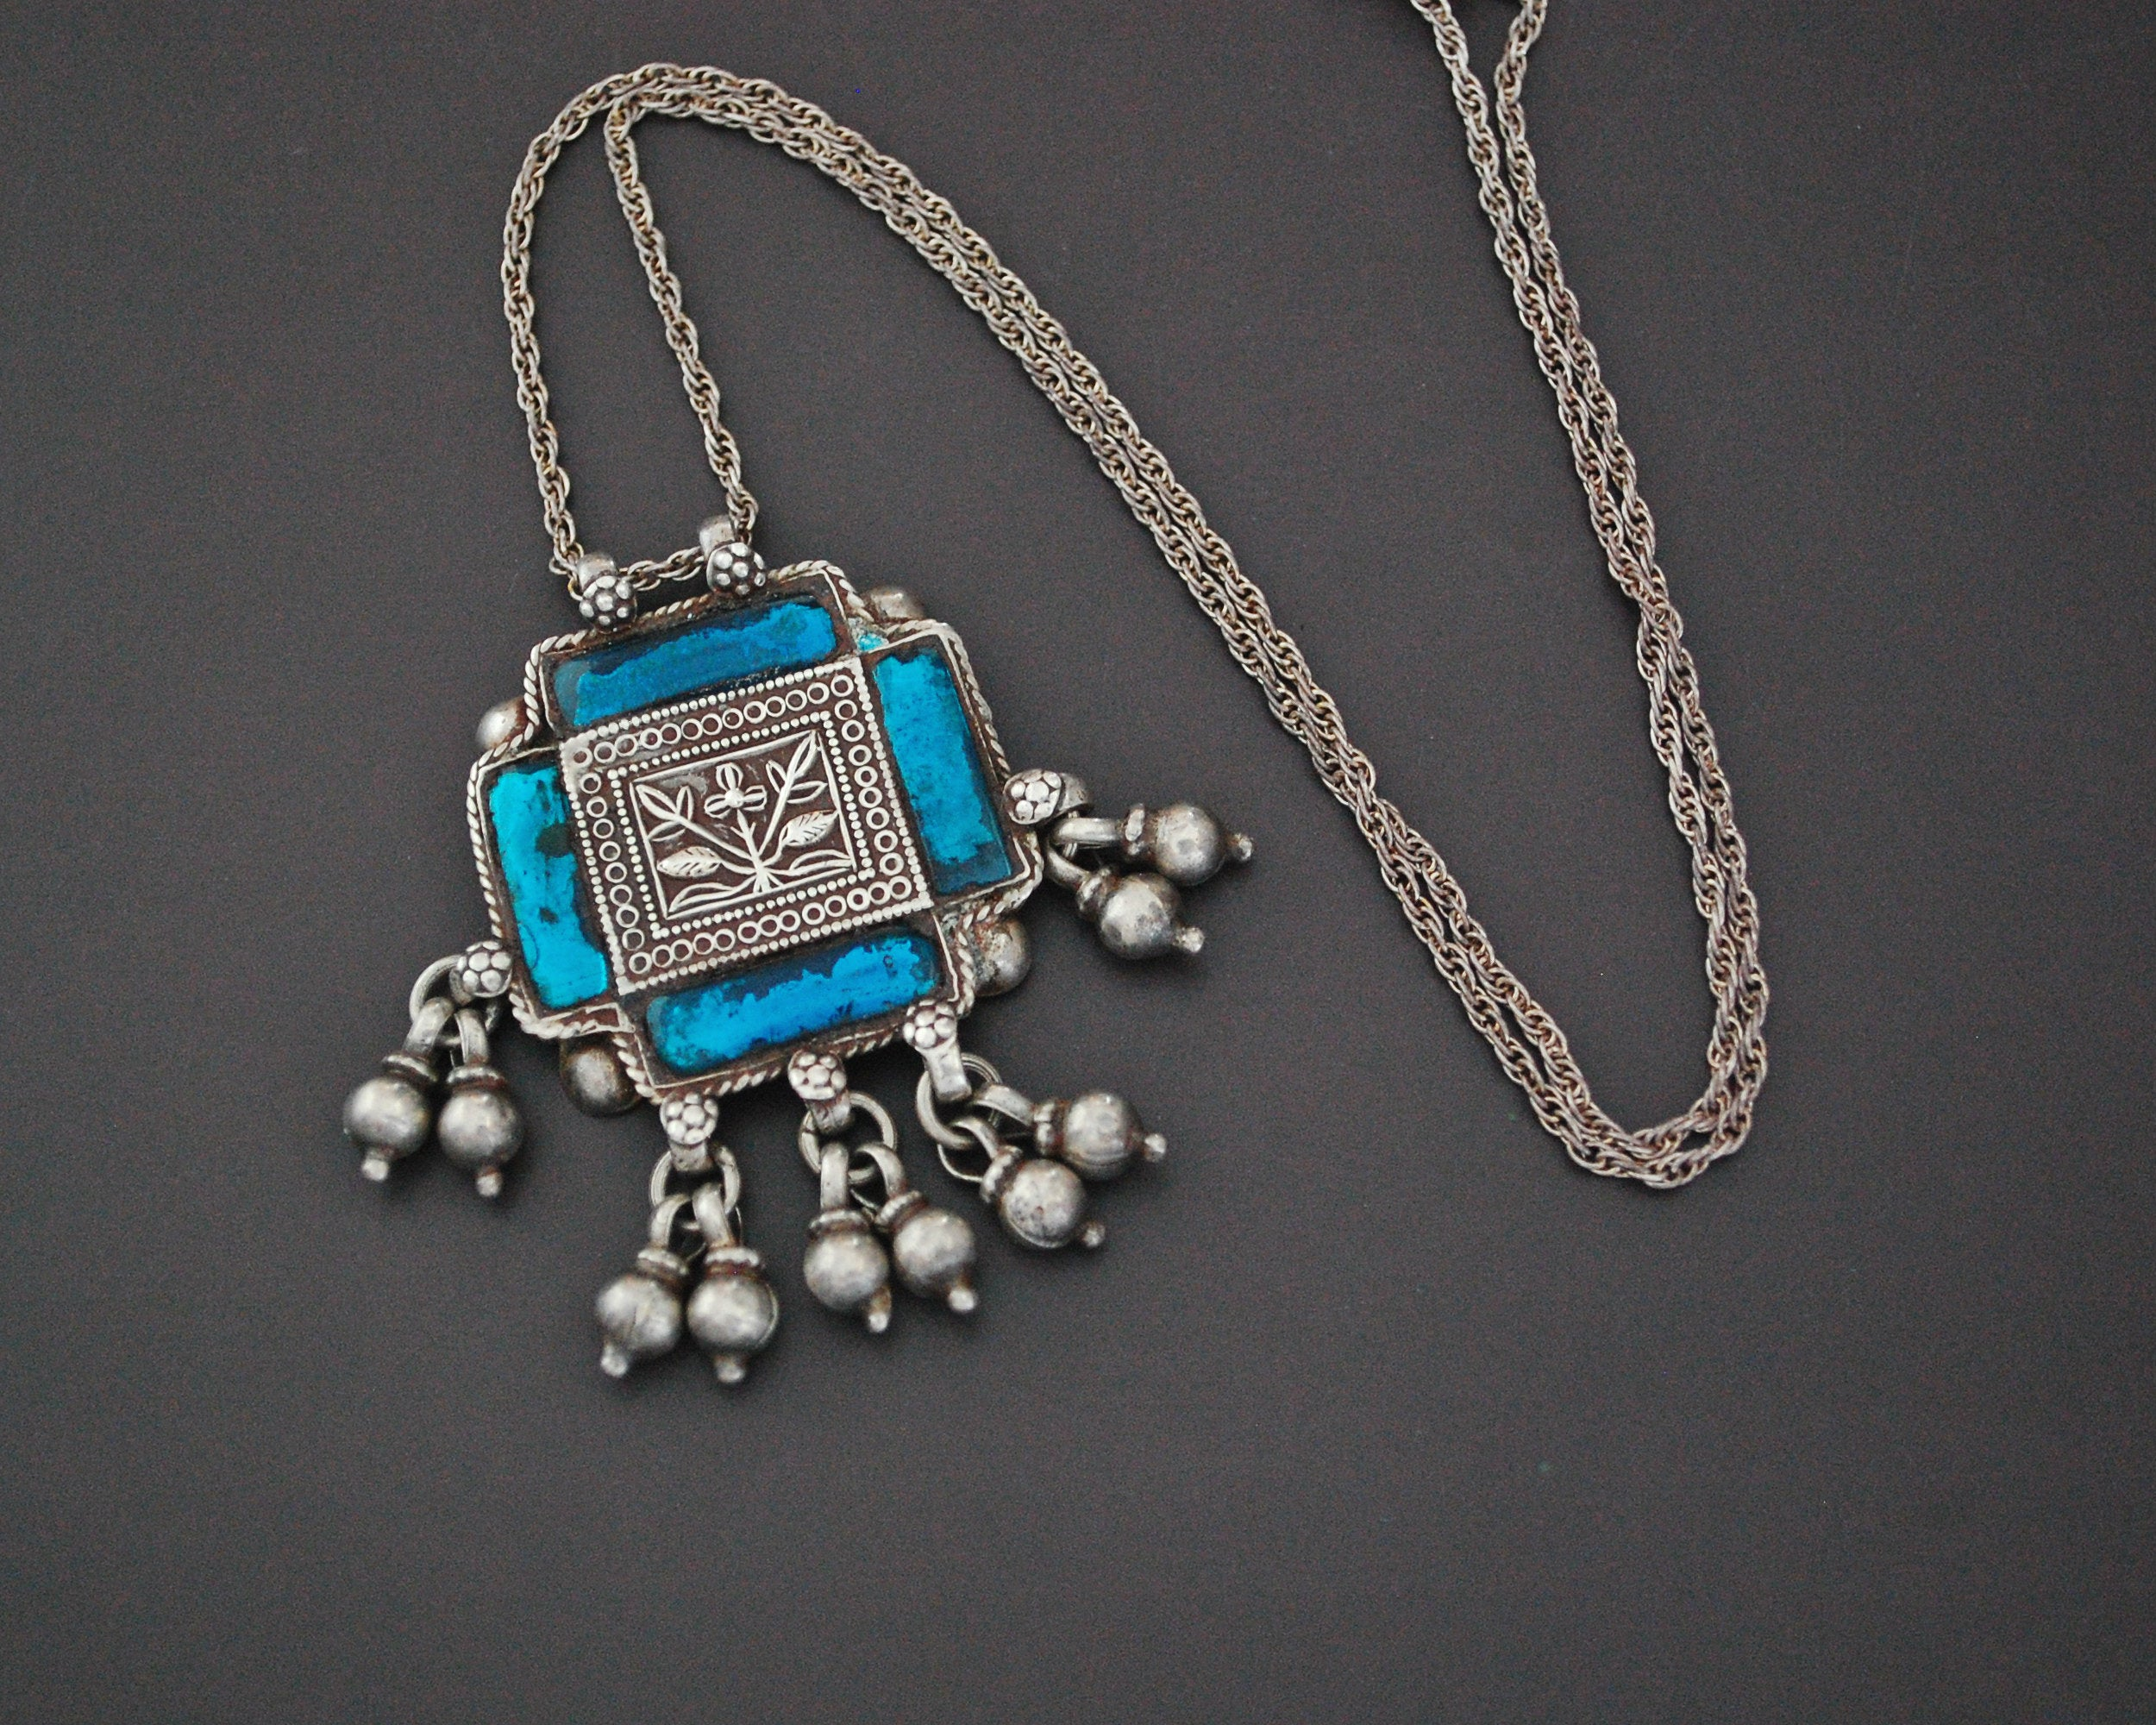 Rajasthani Silver Amulet with Glass and Bells Necklace